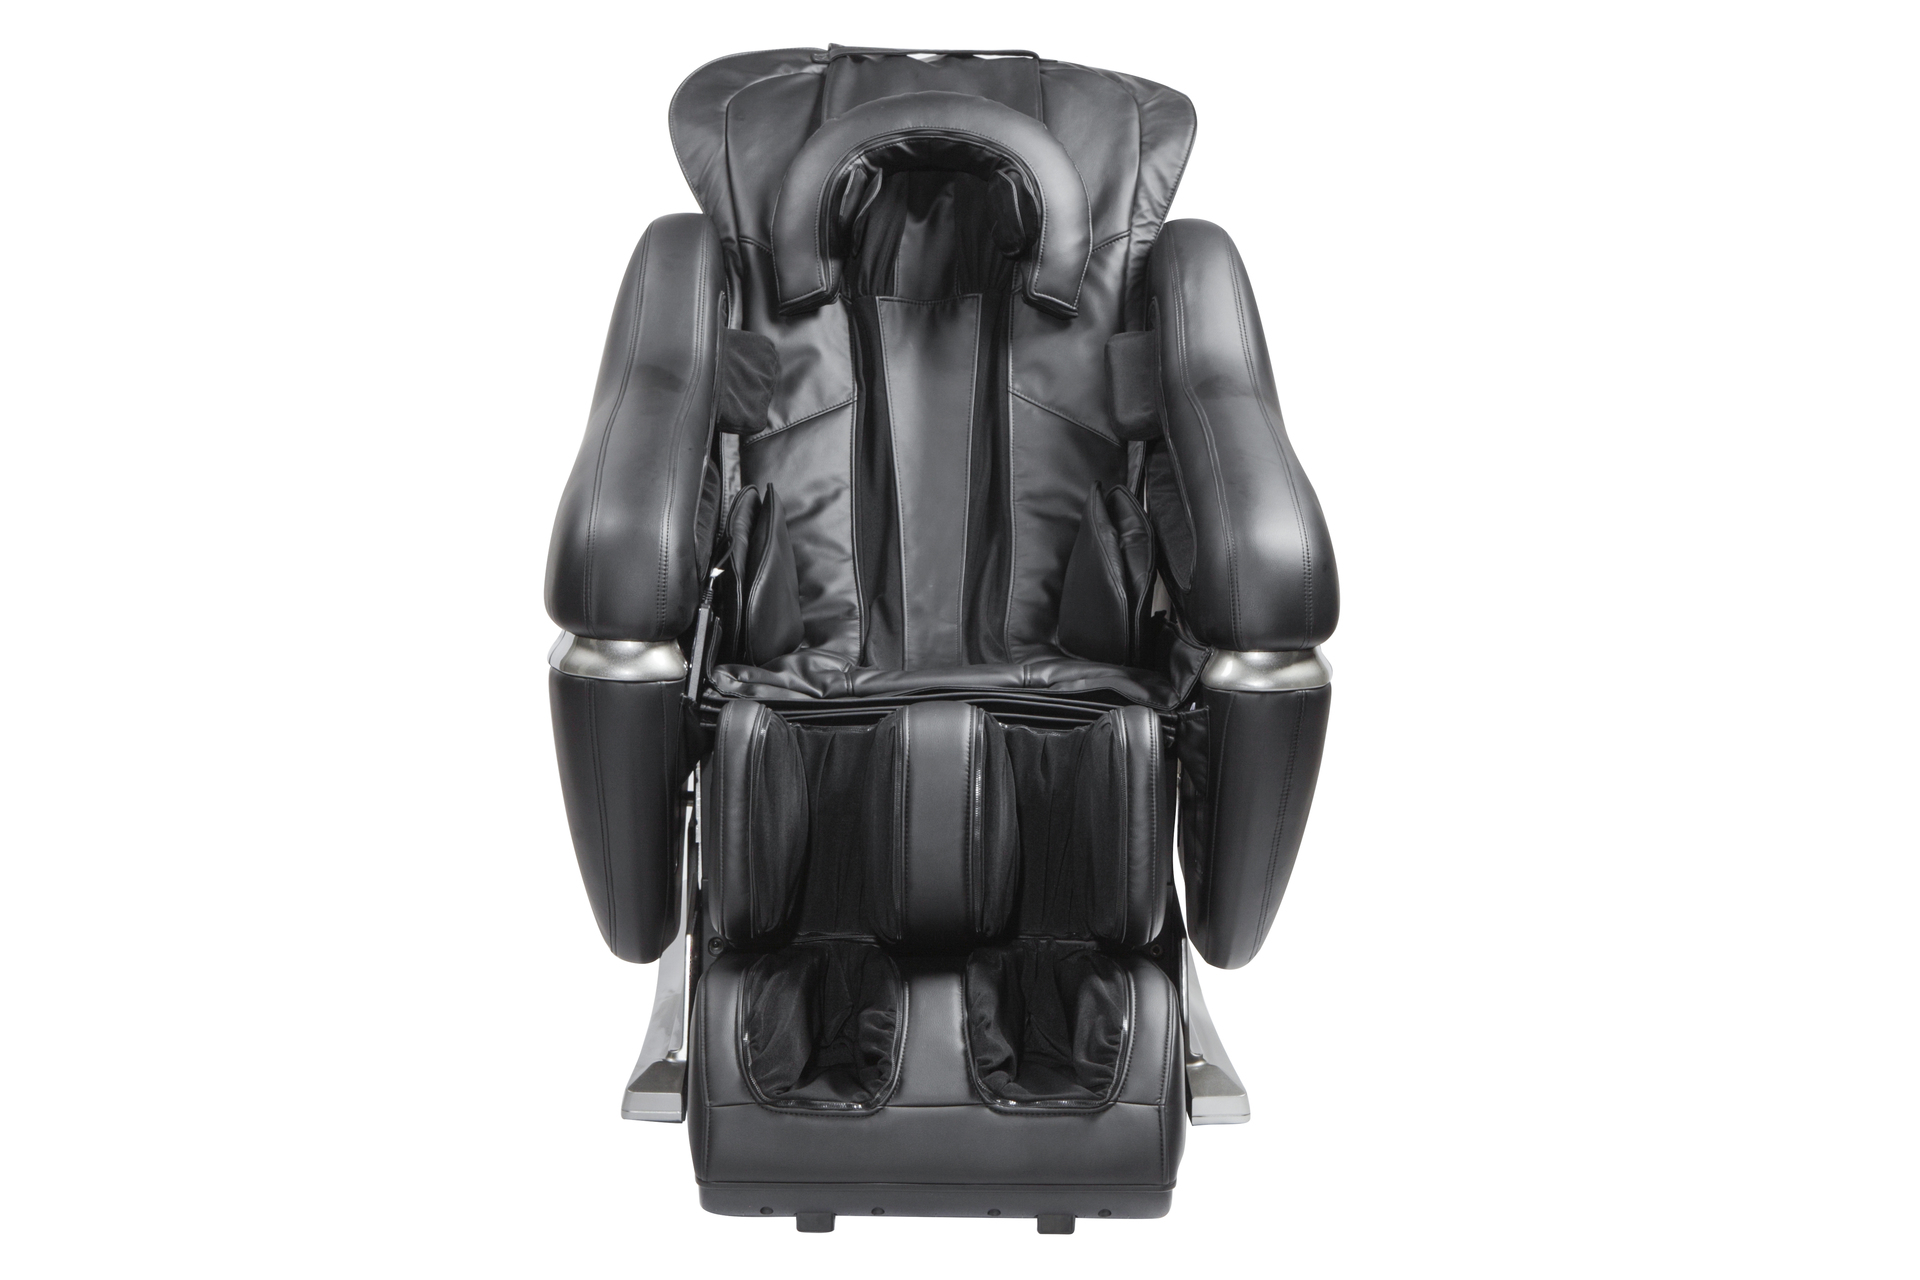 Best Massage Chair In The World Massage Chairs For Less Ultimate L Iii